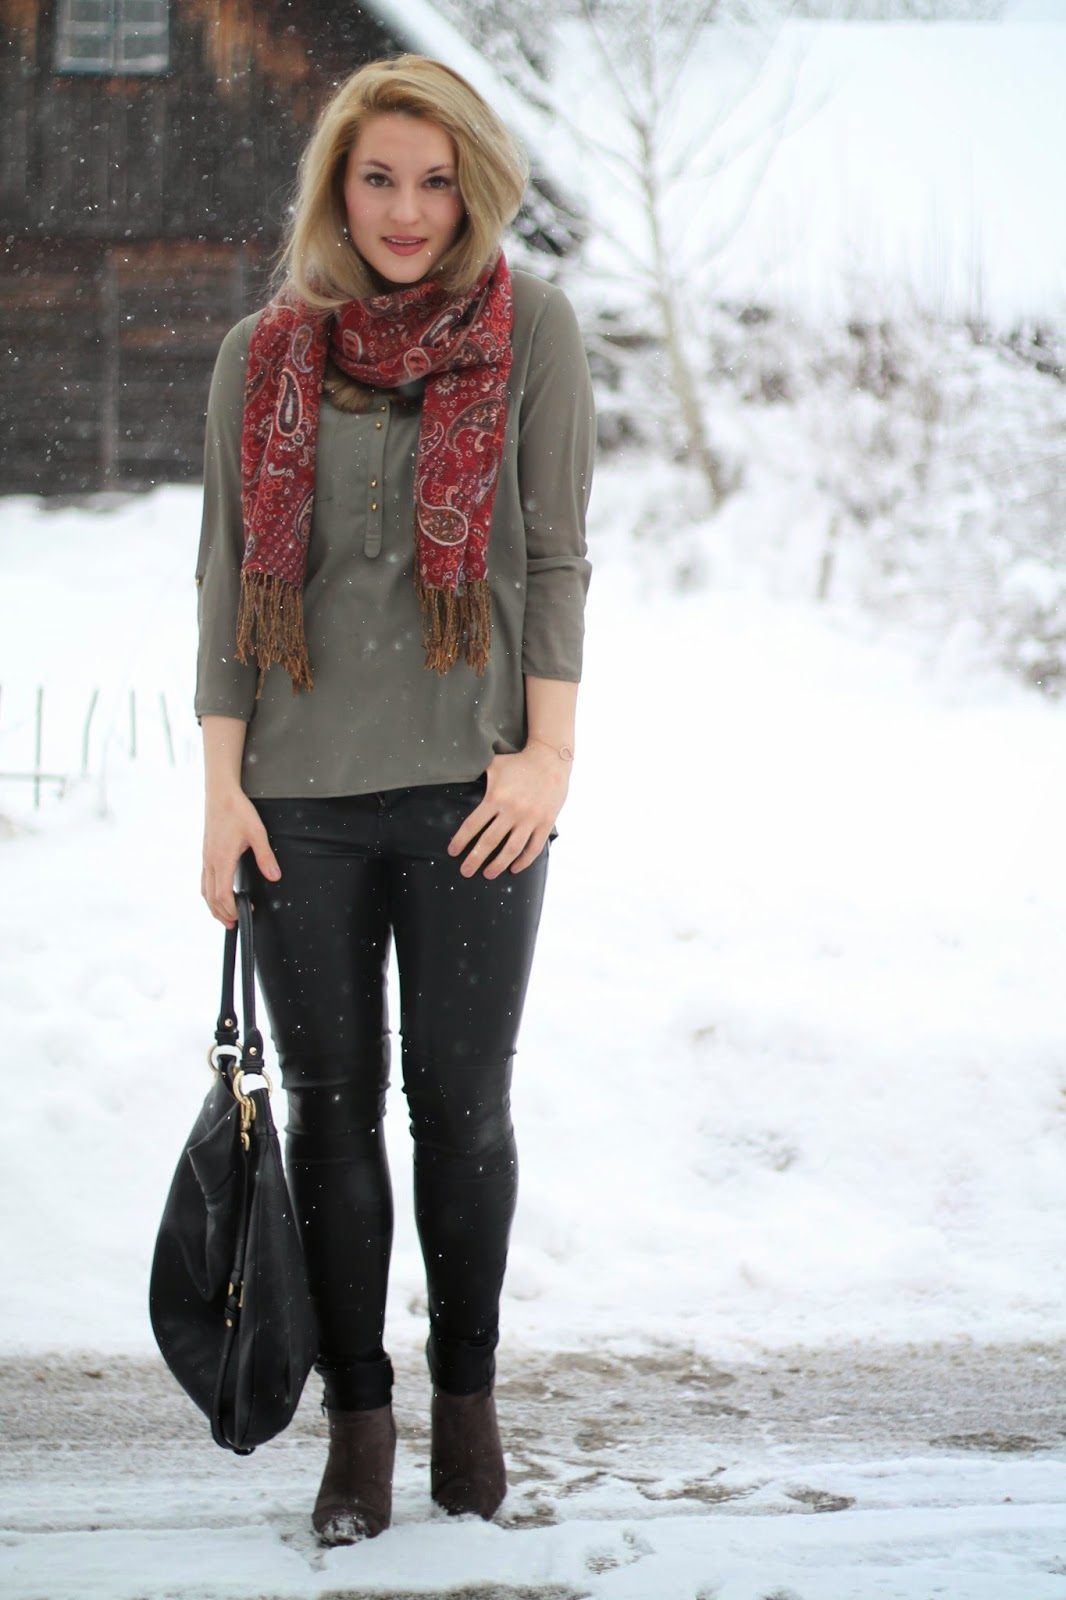 Fashionblogger Austria / Österreich / Deutsch / German / Kärnten / Carinthia / Klagenfurt / Köttmannsdorf / Winter Look / Classy / Edgy / Winter / WInter Style 2014 / Winter Look / Fashionista Look / Streetstyle Klagenfurt Vienna Wien Austria / /Winter Outfit / Leather Pants Leder hose Holy / Olive Bluse Olive Blouse Tunika Primark / Red Scarf Ornamente Roter Schal / Marc by Marc Jacobs Hillier Hobo Bag Golden Hardware Schwarz Black Leather / Zara Grey Boots graue Boots /